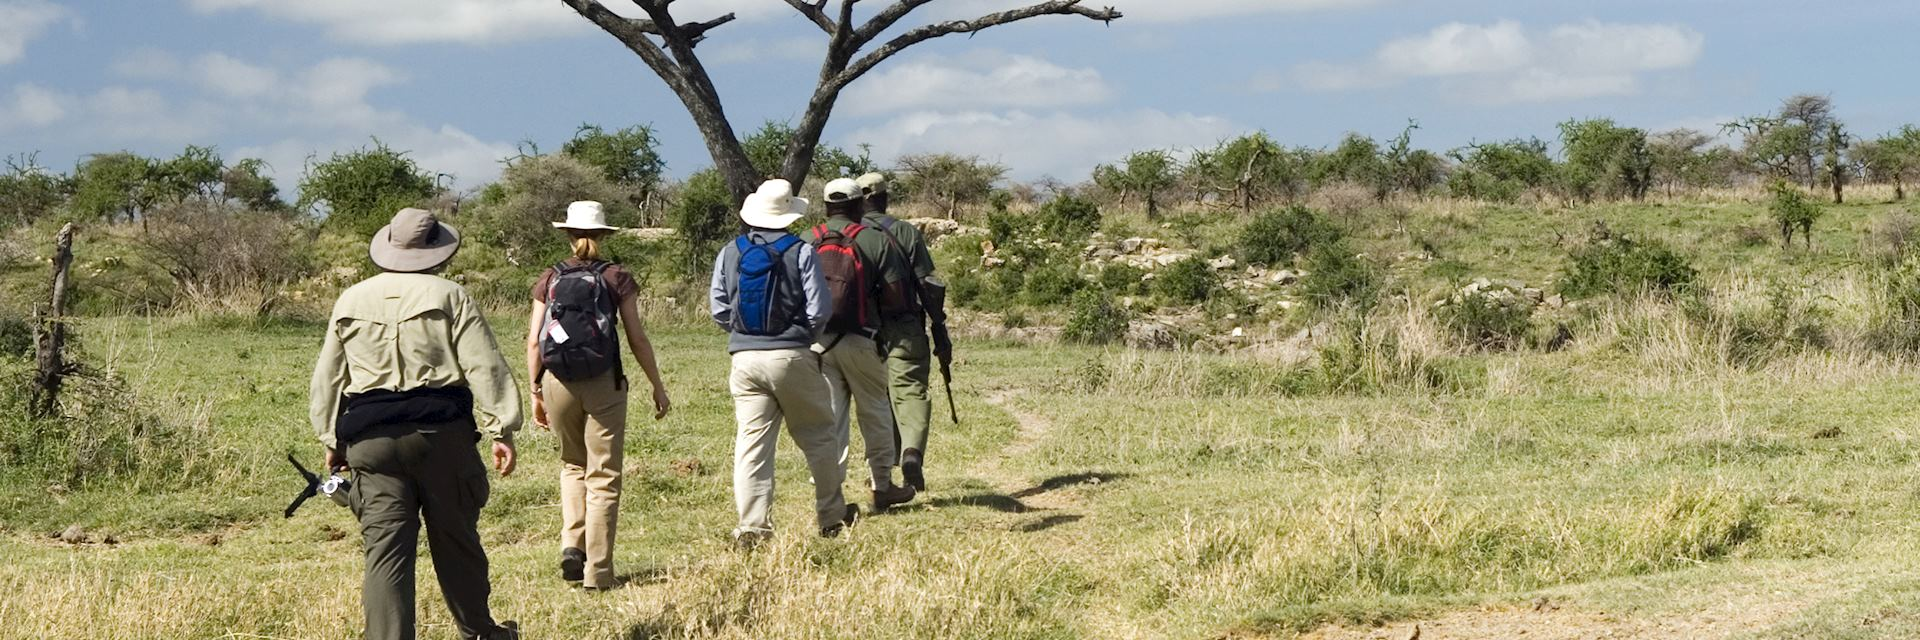 Walking safari in South Luangwa National Park